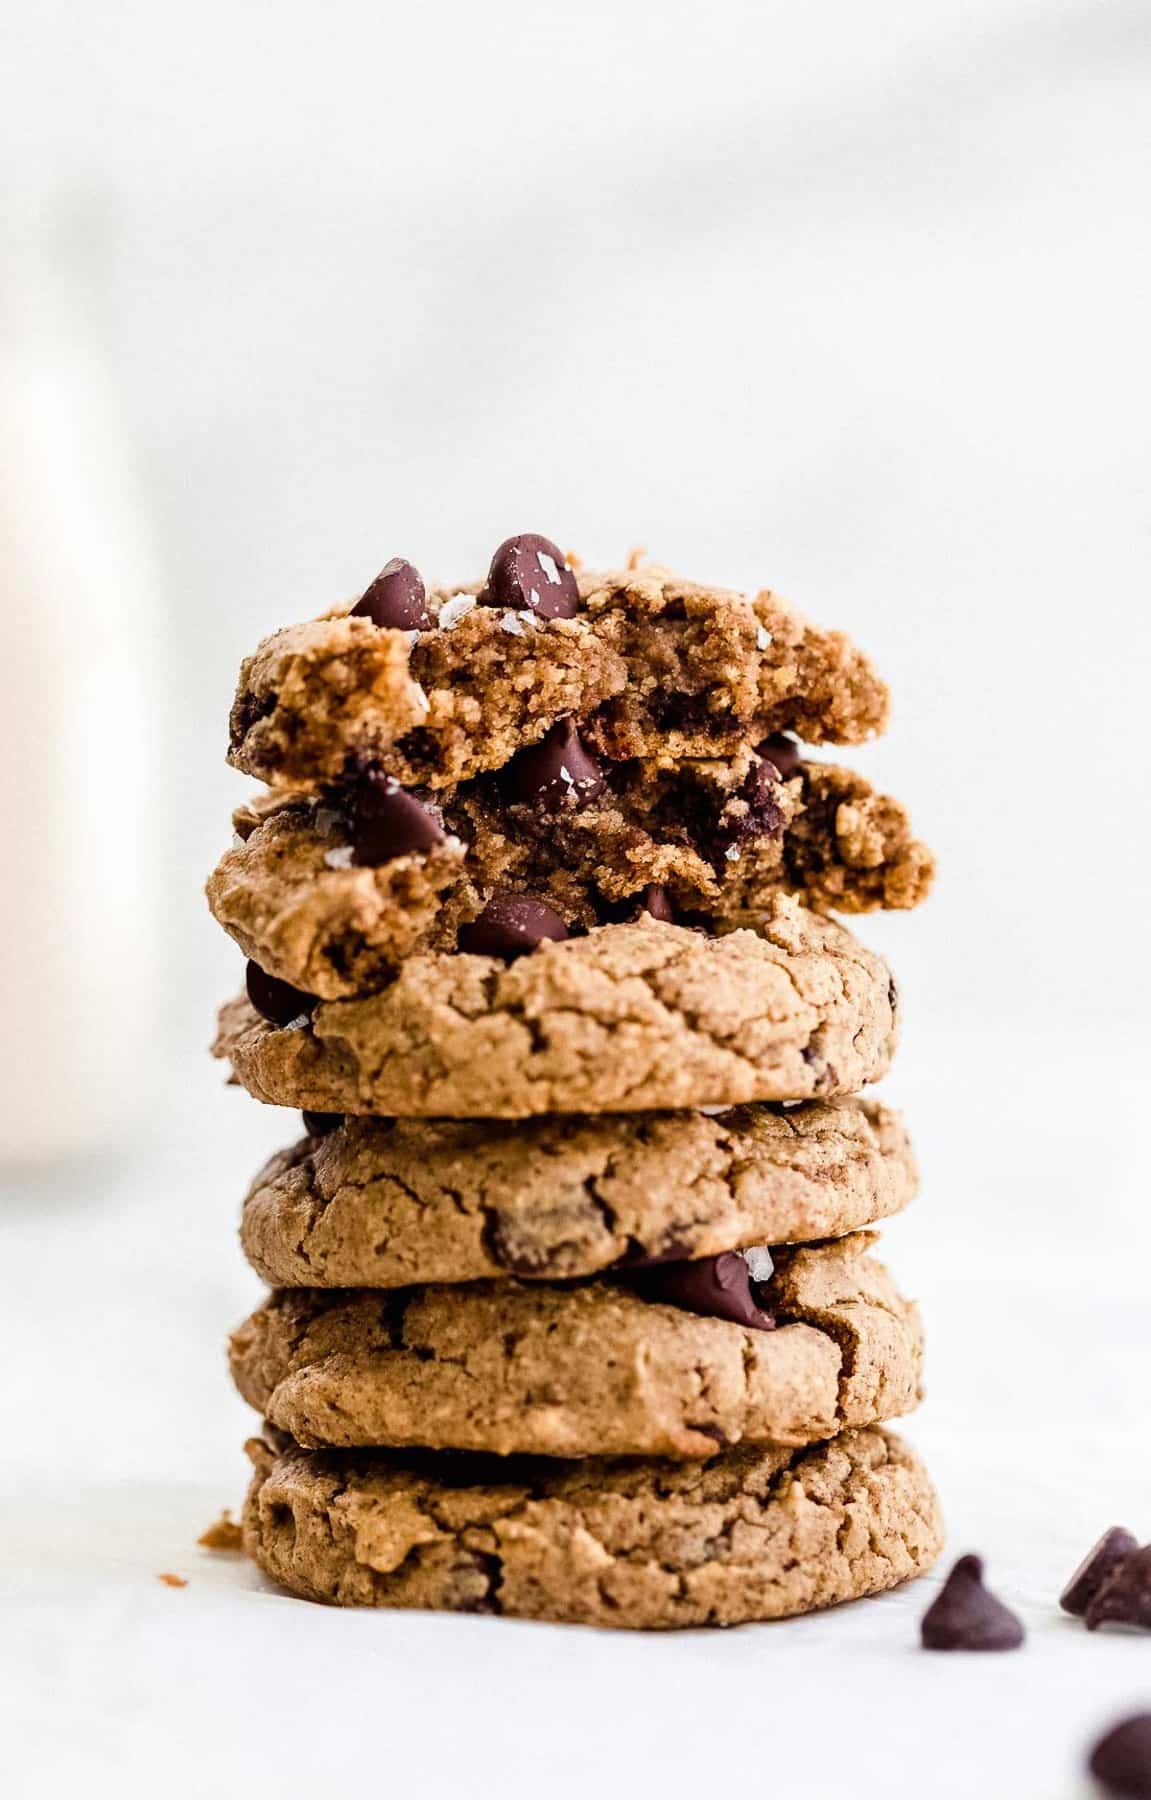 Five cookies stacked on each other with a jar of milk in the back.